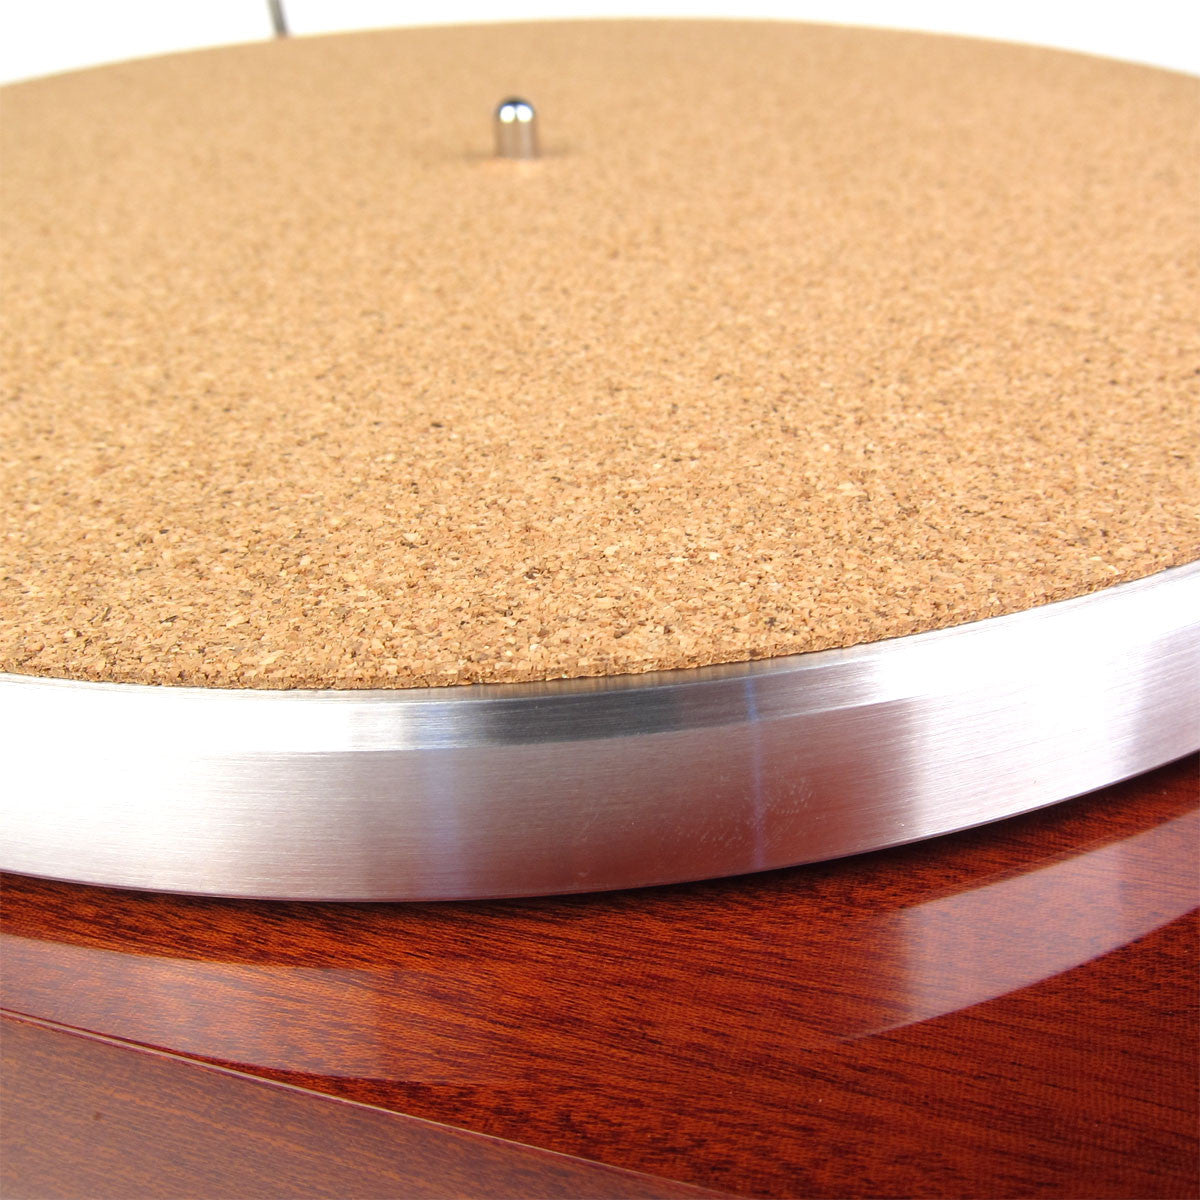 Pro-Ject: 1 Xpression Carbon Classic Turntable - Mahogany mat